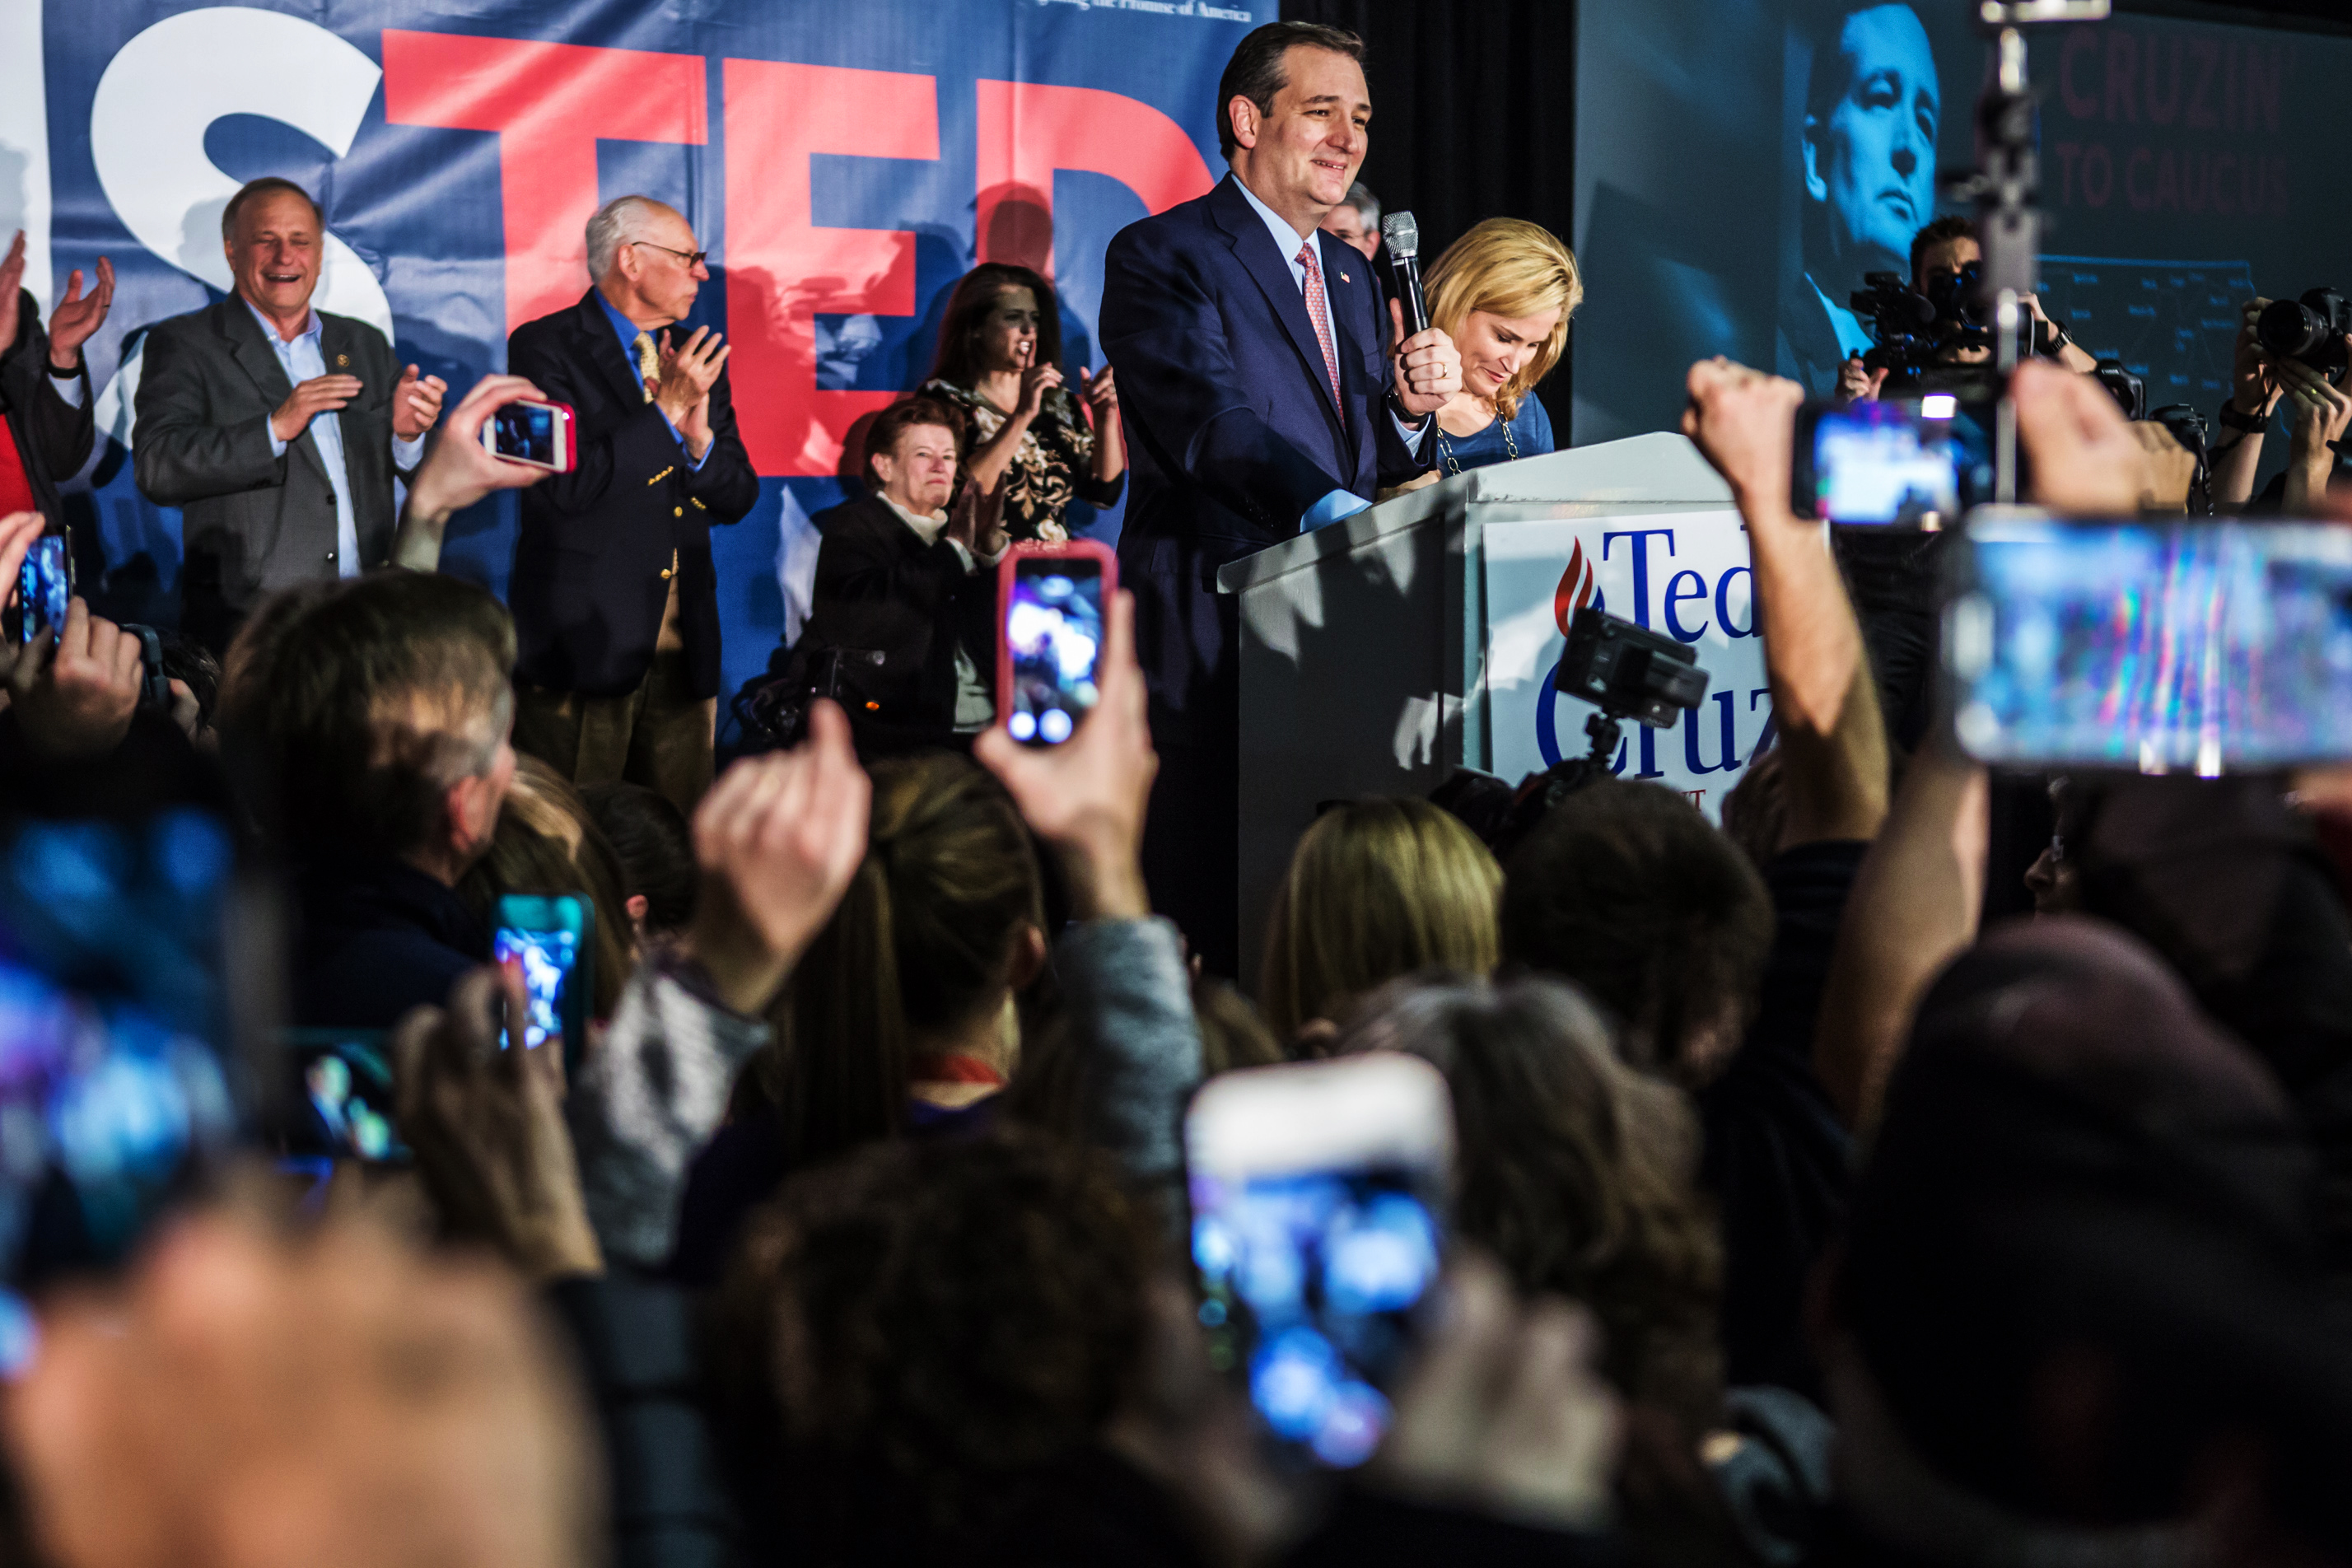 Republican presidential candidate Sen. Ted Cruz, r-TX, joined by his wife Heidi Cruz, speaks at a caucus night rally in Des Moines, Iowa, on Feb. 1, 2016.